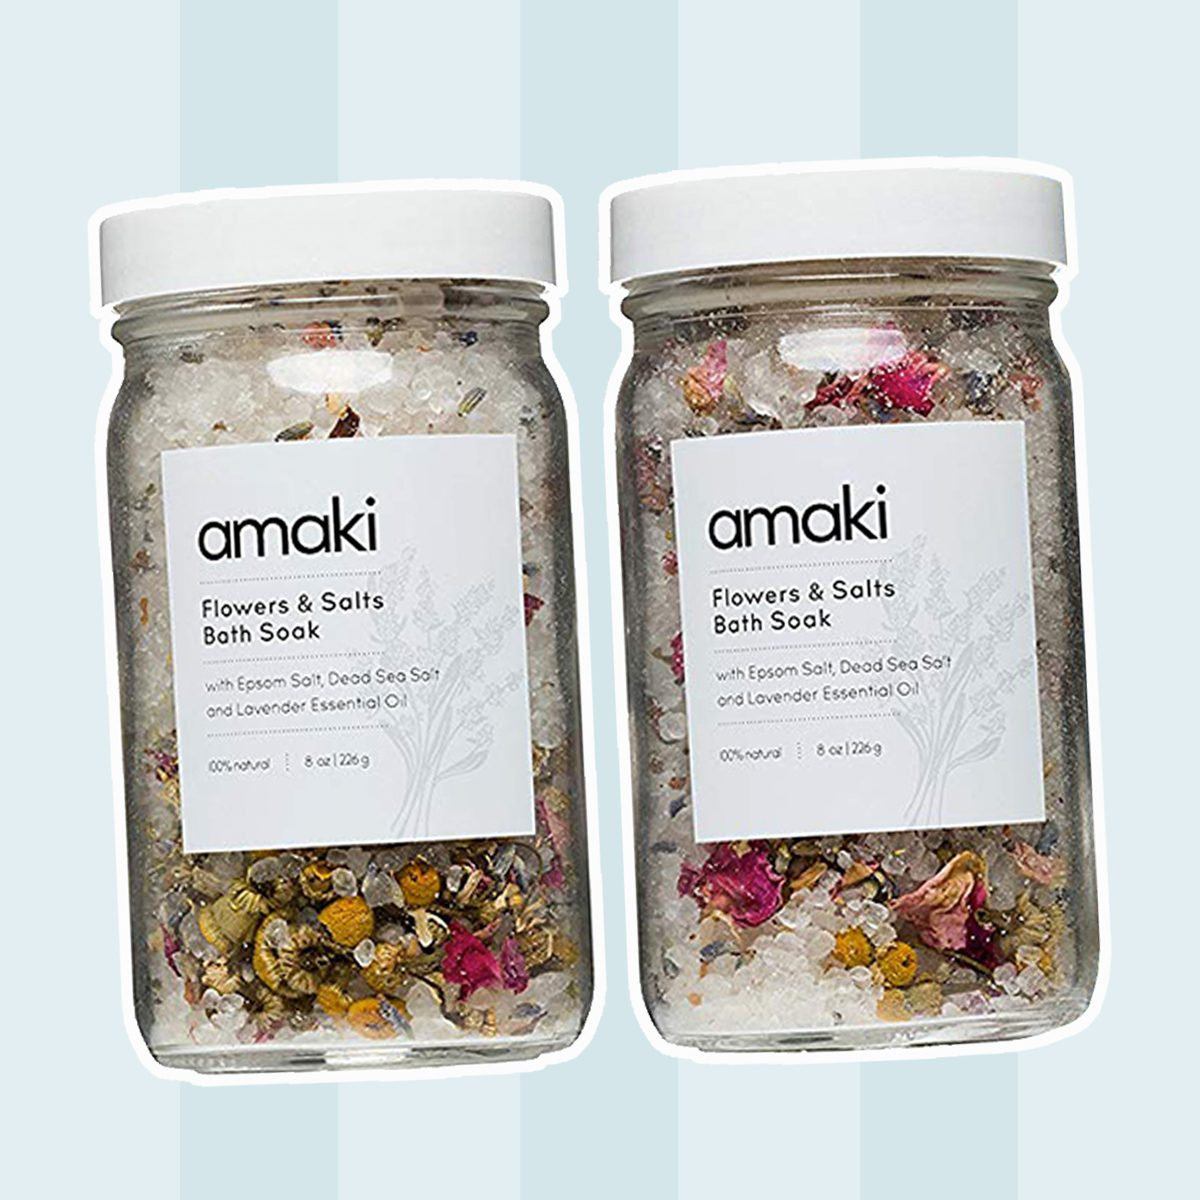 Herbal Bath Soak Blend of Epsom & Dead Sea Salt Infused with Lavender Essential Oil! For Stress Relief, Reduce Sore Muscle, Skin Soothing - Luxury Gift Set